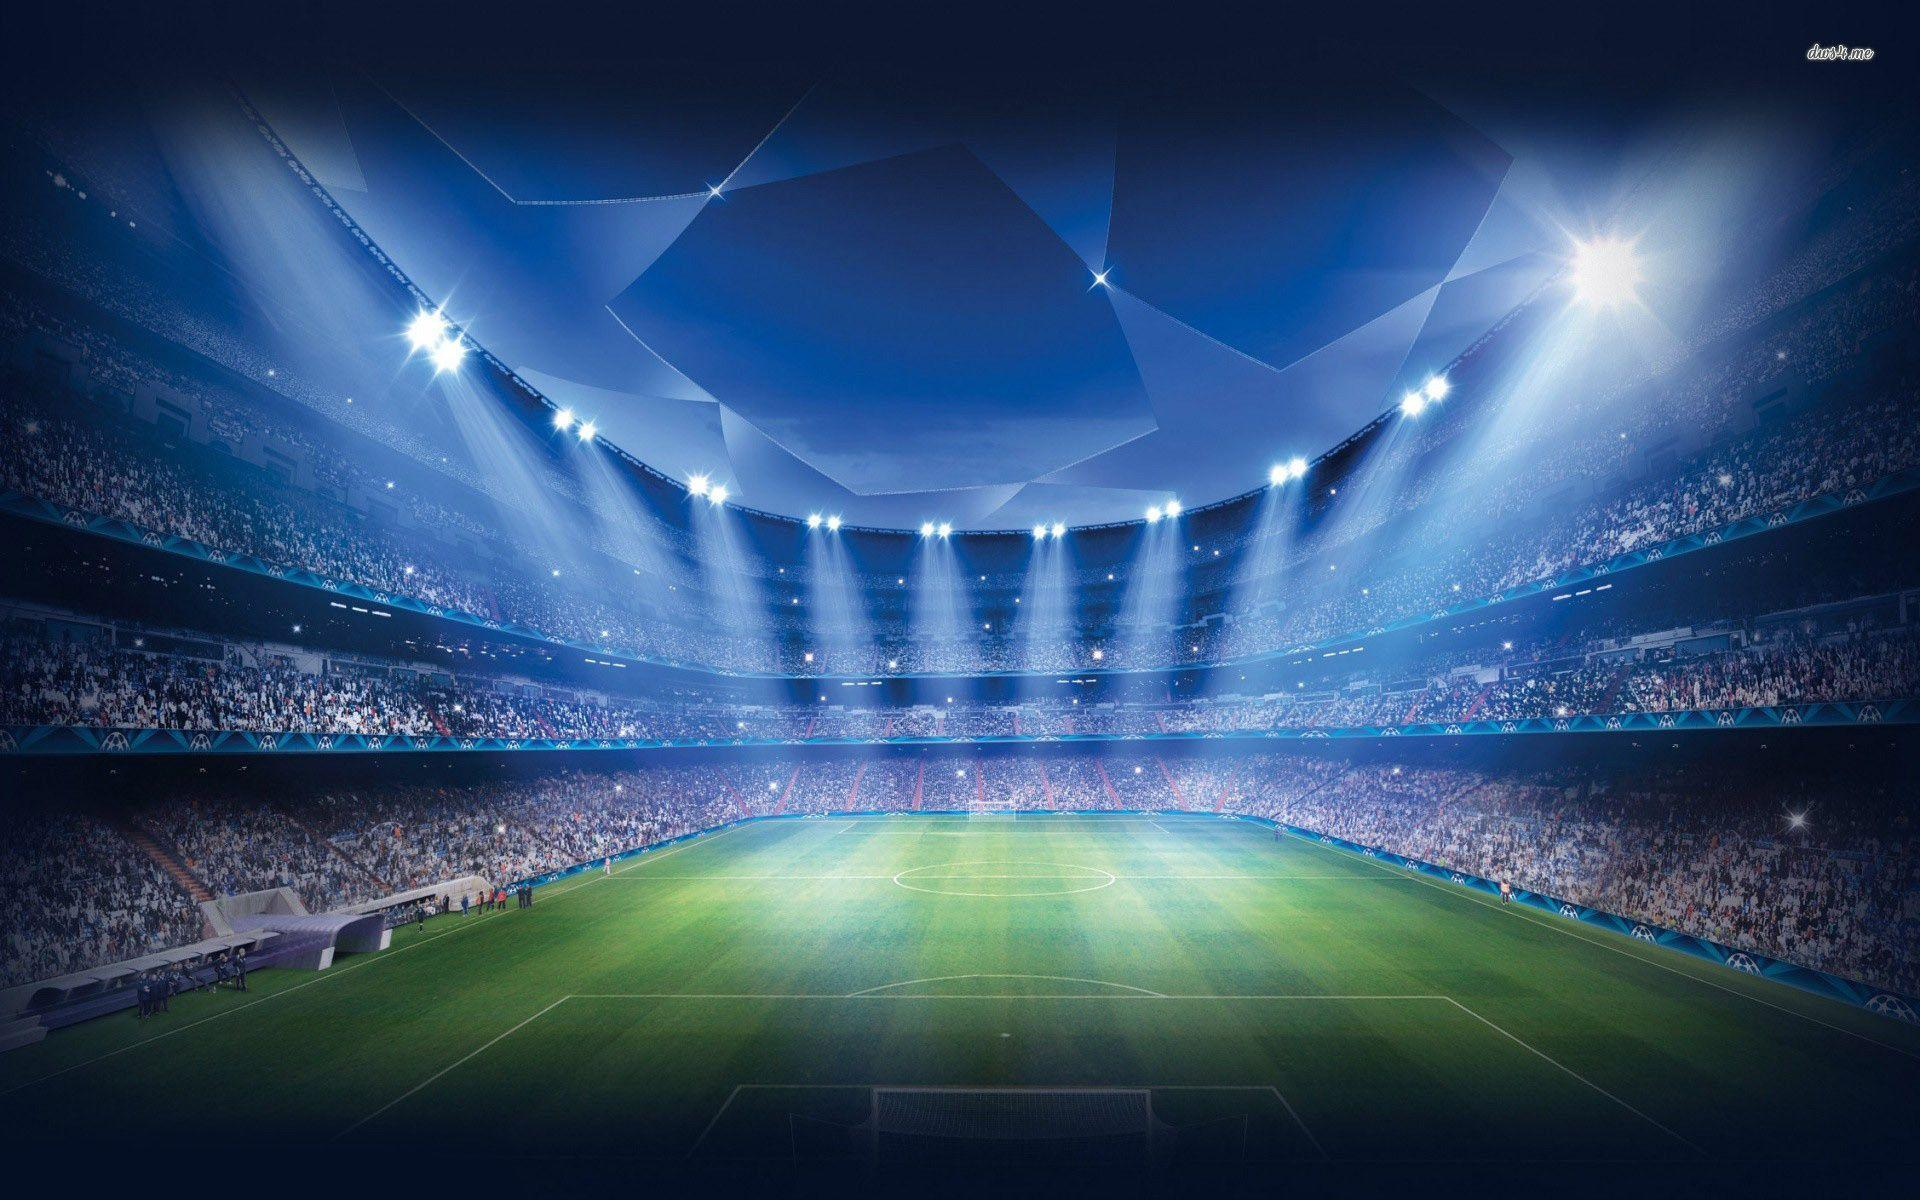 Football Stadium Backgrounds - Wallpaper Cave